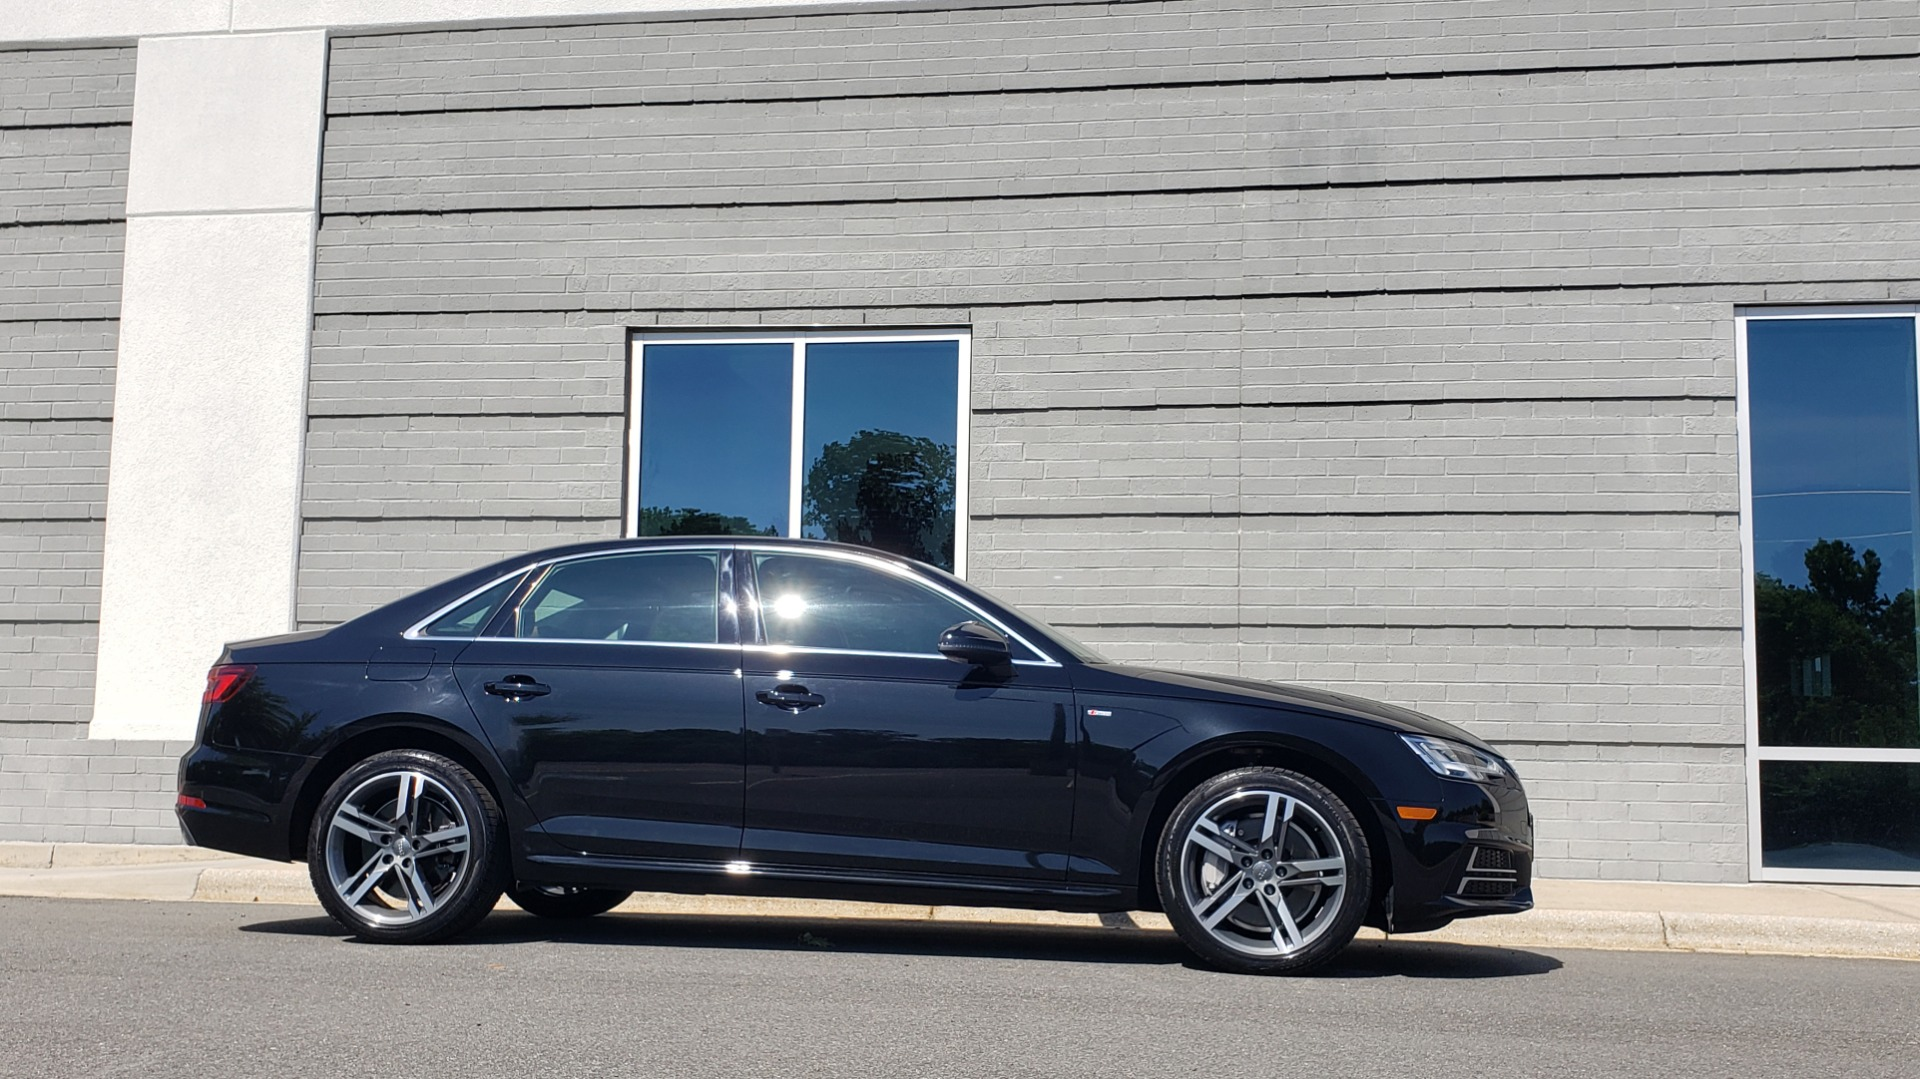 Used 2018 Audi A4 PREMIUM PLUS 2.0T / NAV / SUNROOF / B&O SND / CLD WTHR / REARVIEW for sale $30,695 at Formula Imports in Charlotte NC 28227 9